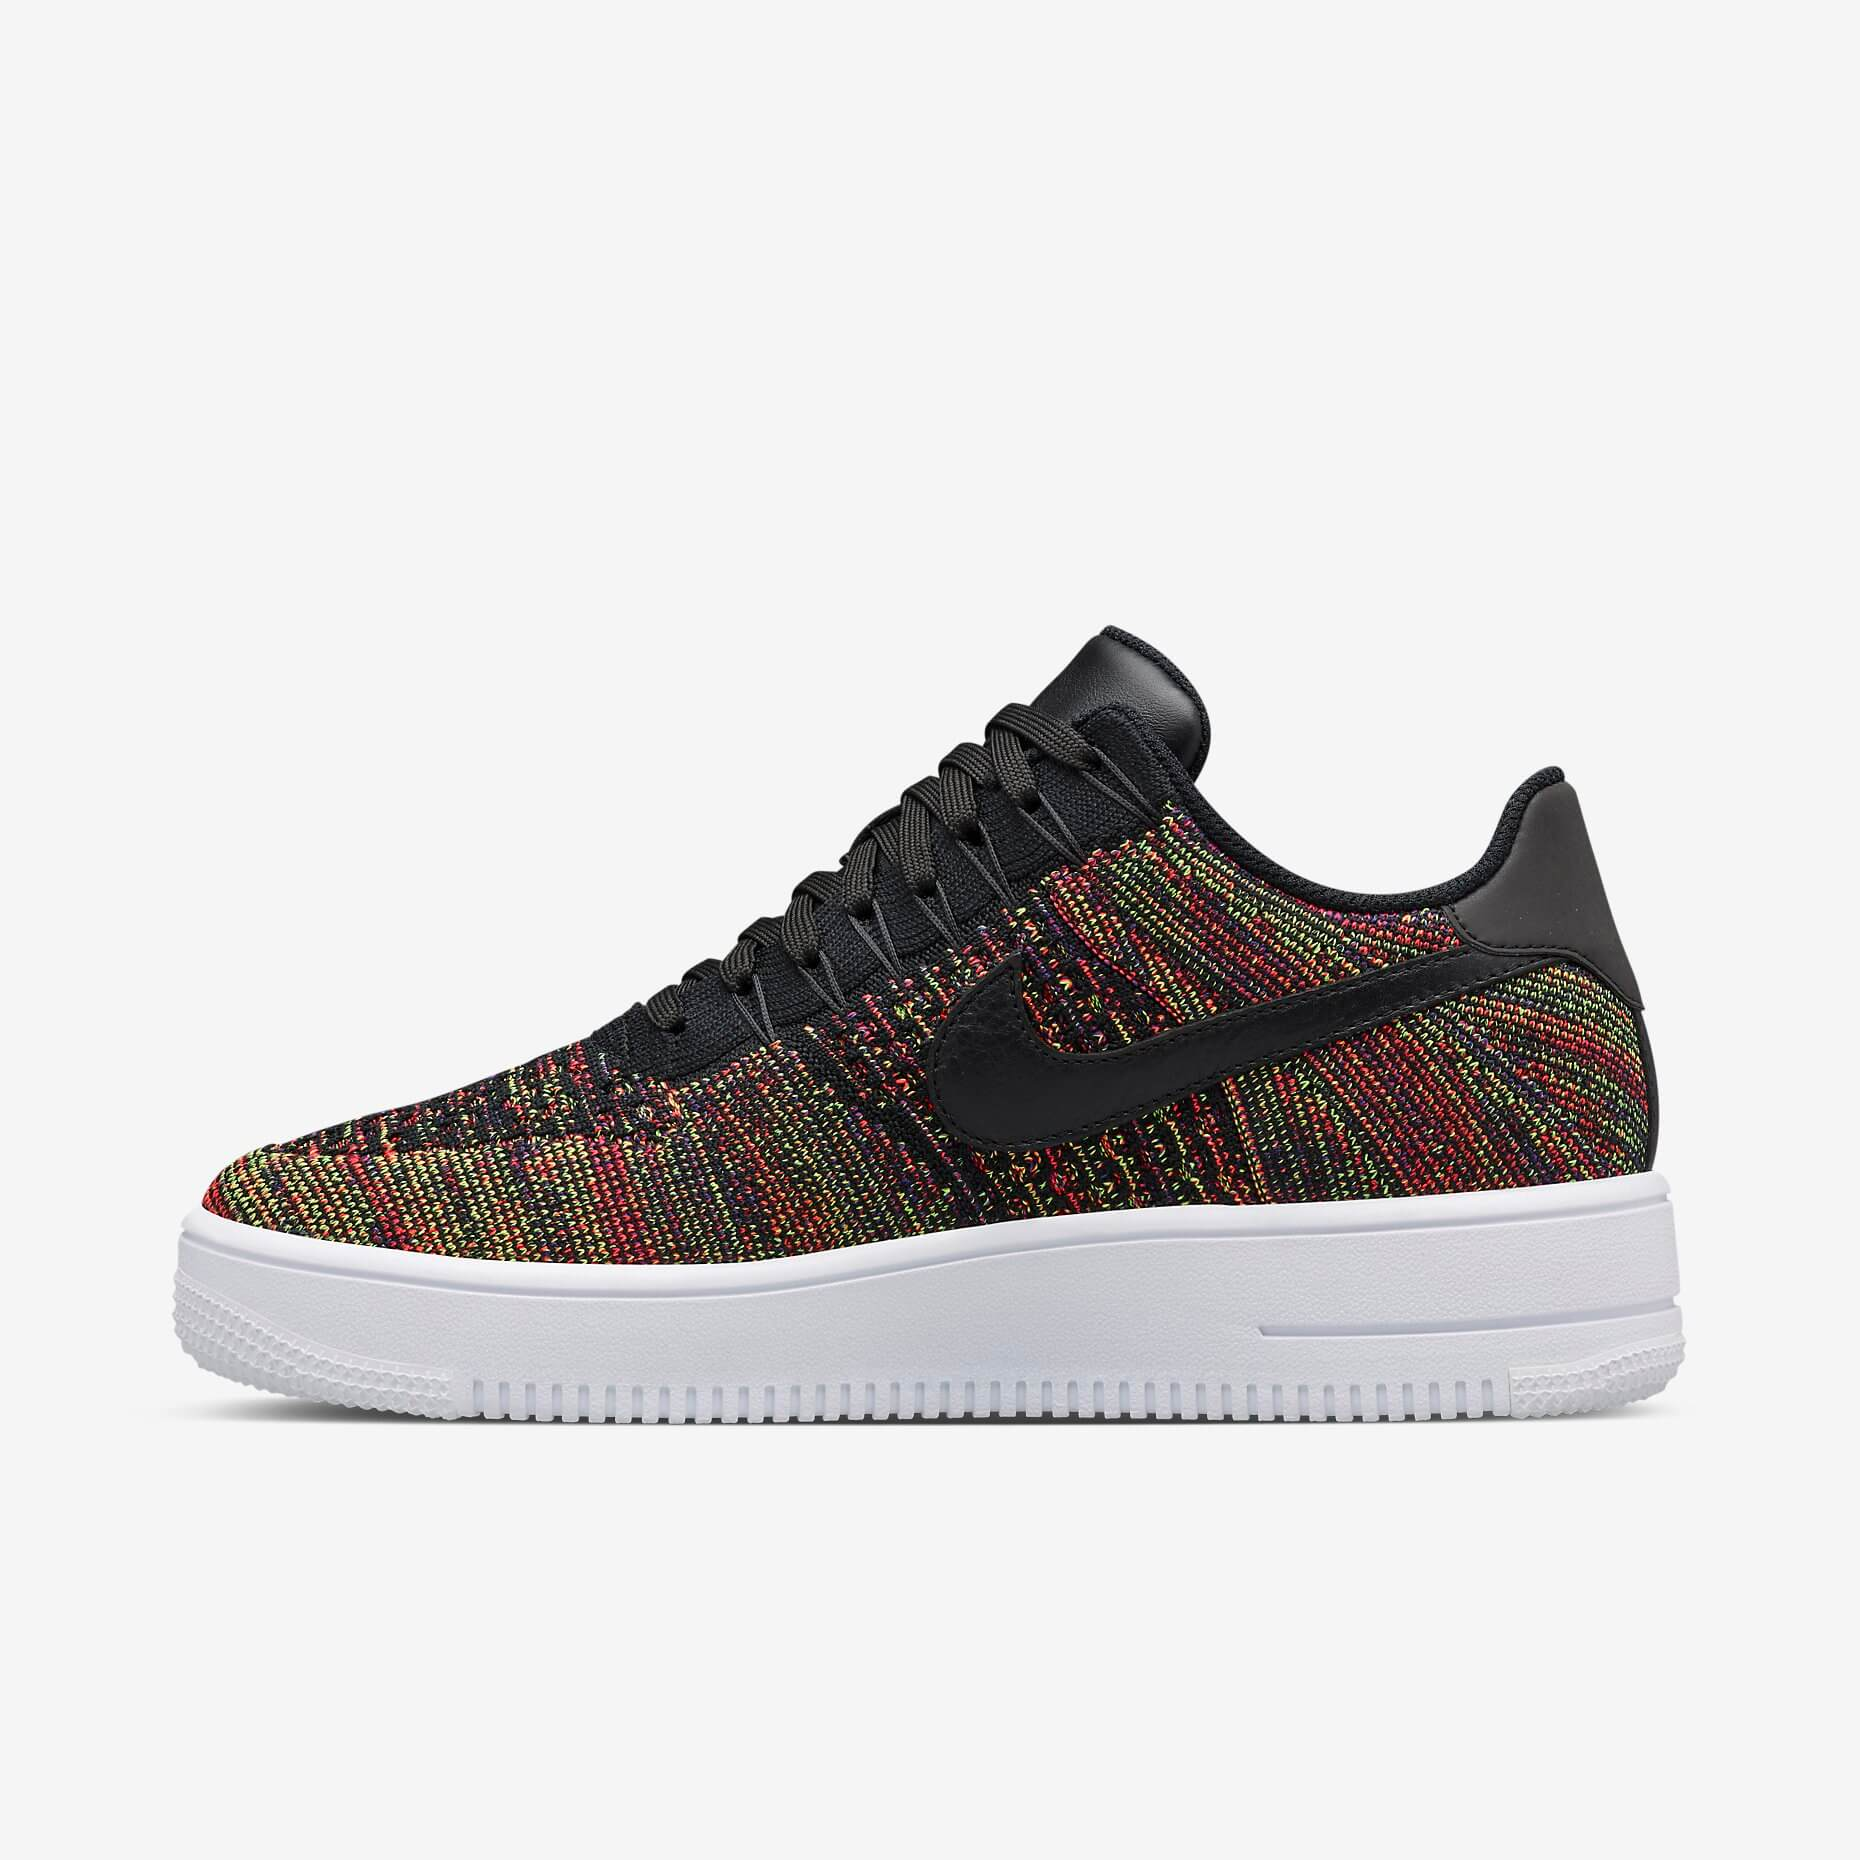 Isla Stewart admiración base  NikeLAB Air Force 1 Low Ultra Flyknit Multicolour | Where To Buy |  826577-001 | The Sole Supplier